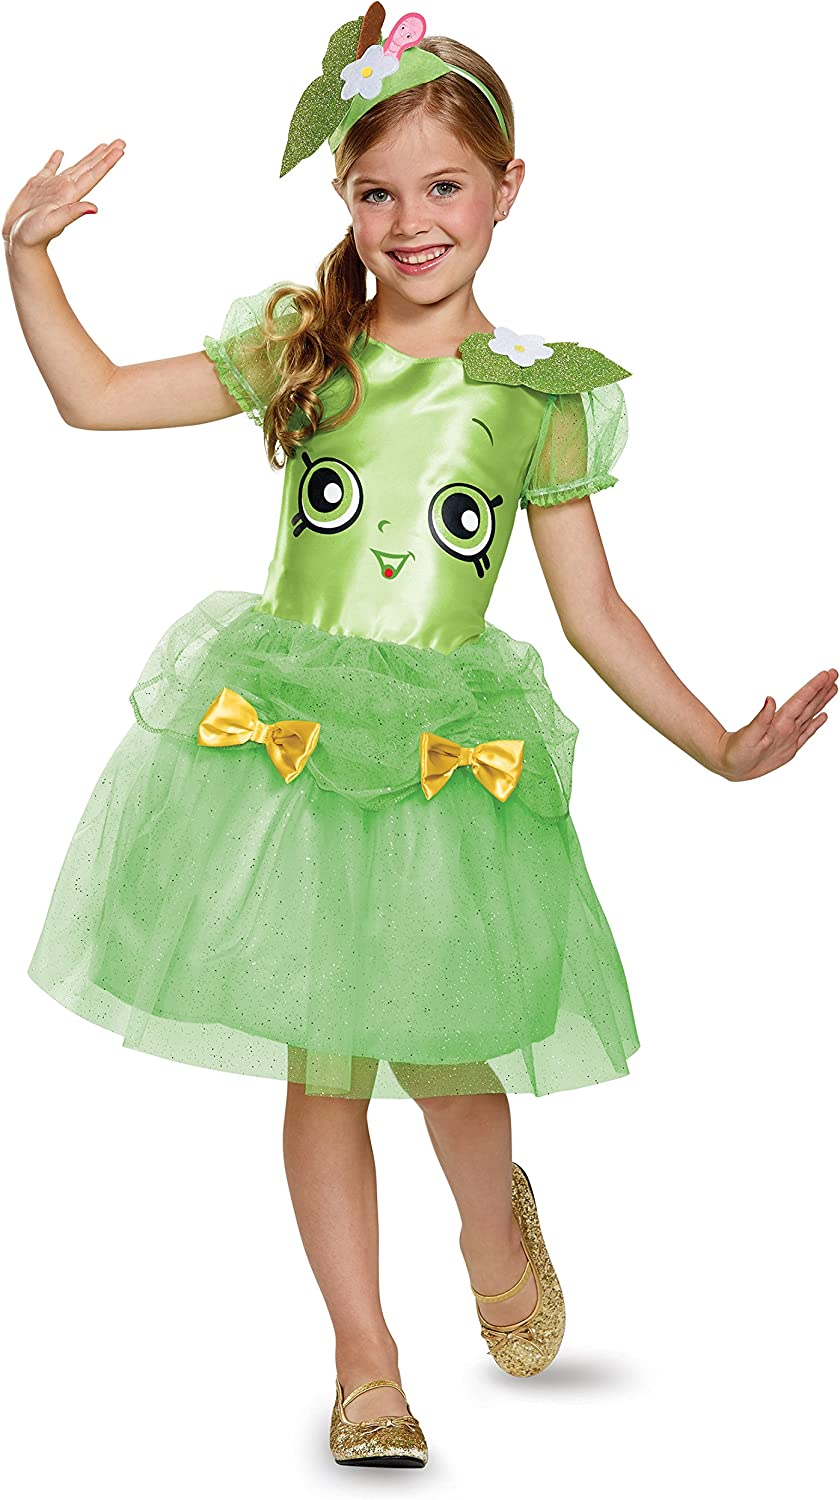 Apple Blossom Classic Shopkins The Licensing Shop Costume, Medium/7-8